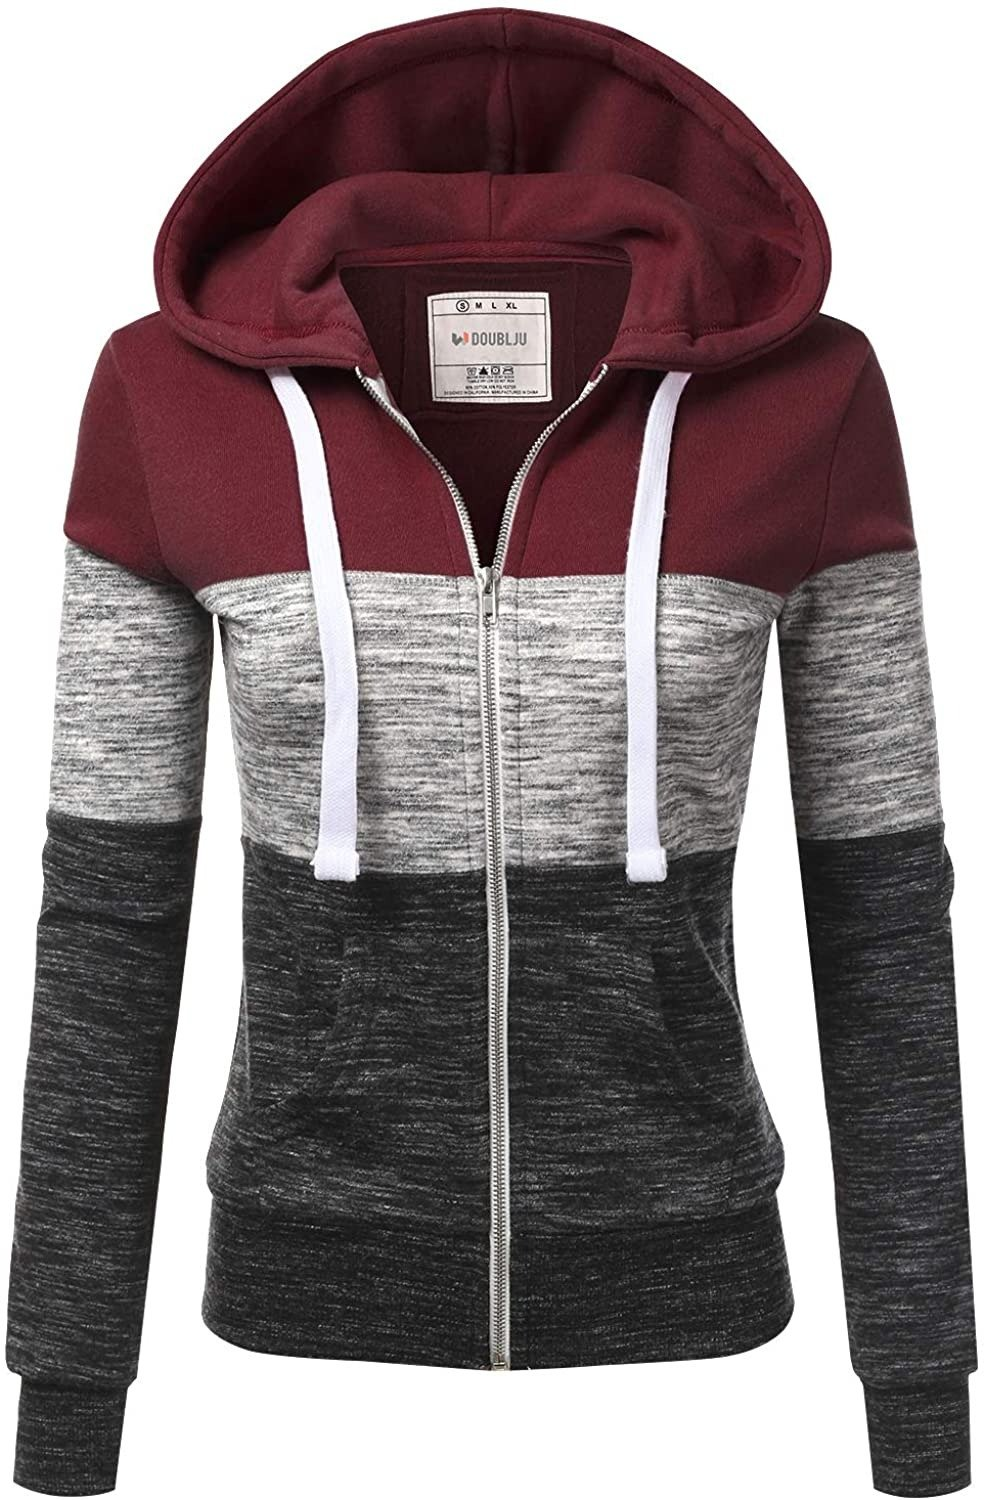 🔥 50% OFF 🔥 Doublju Lightweight Thin Zip-Up Hoodie Jacket for Women with Plus Size